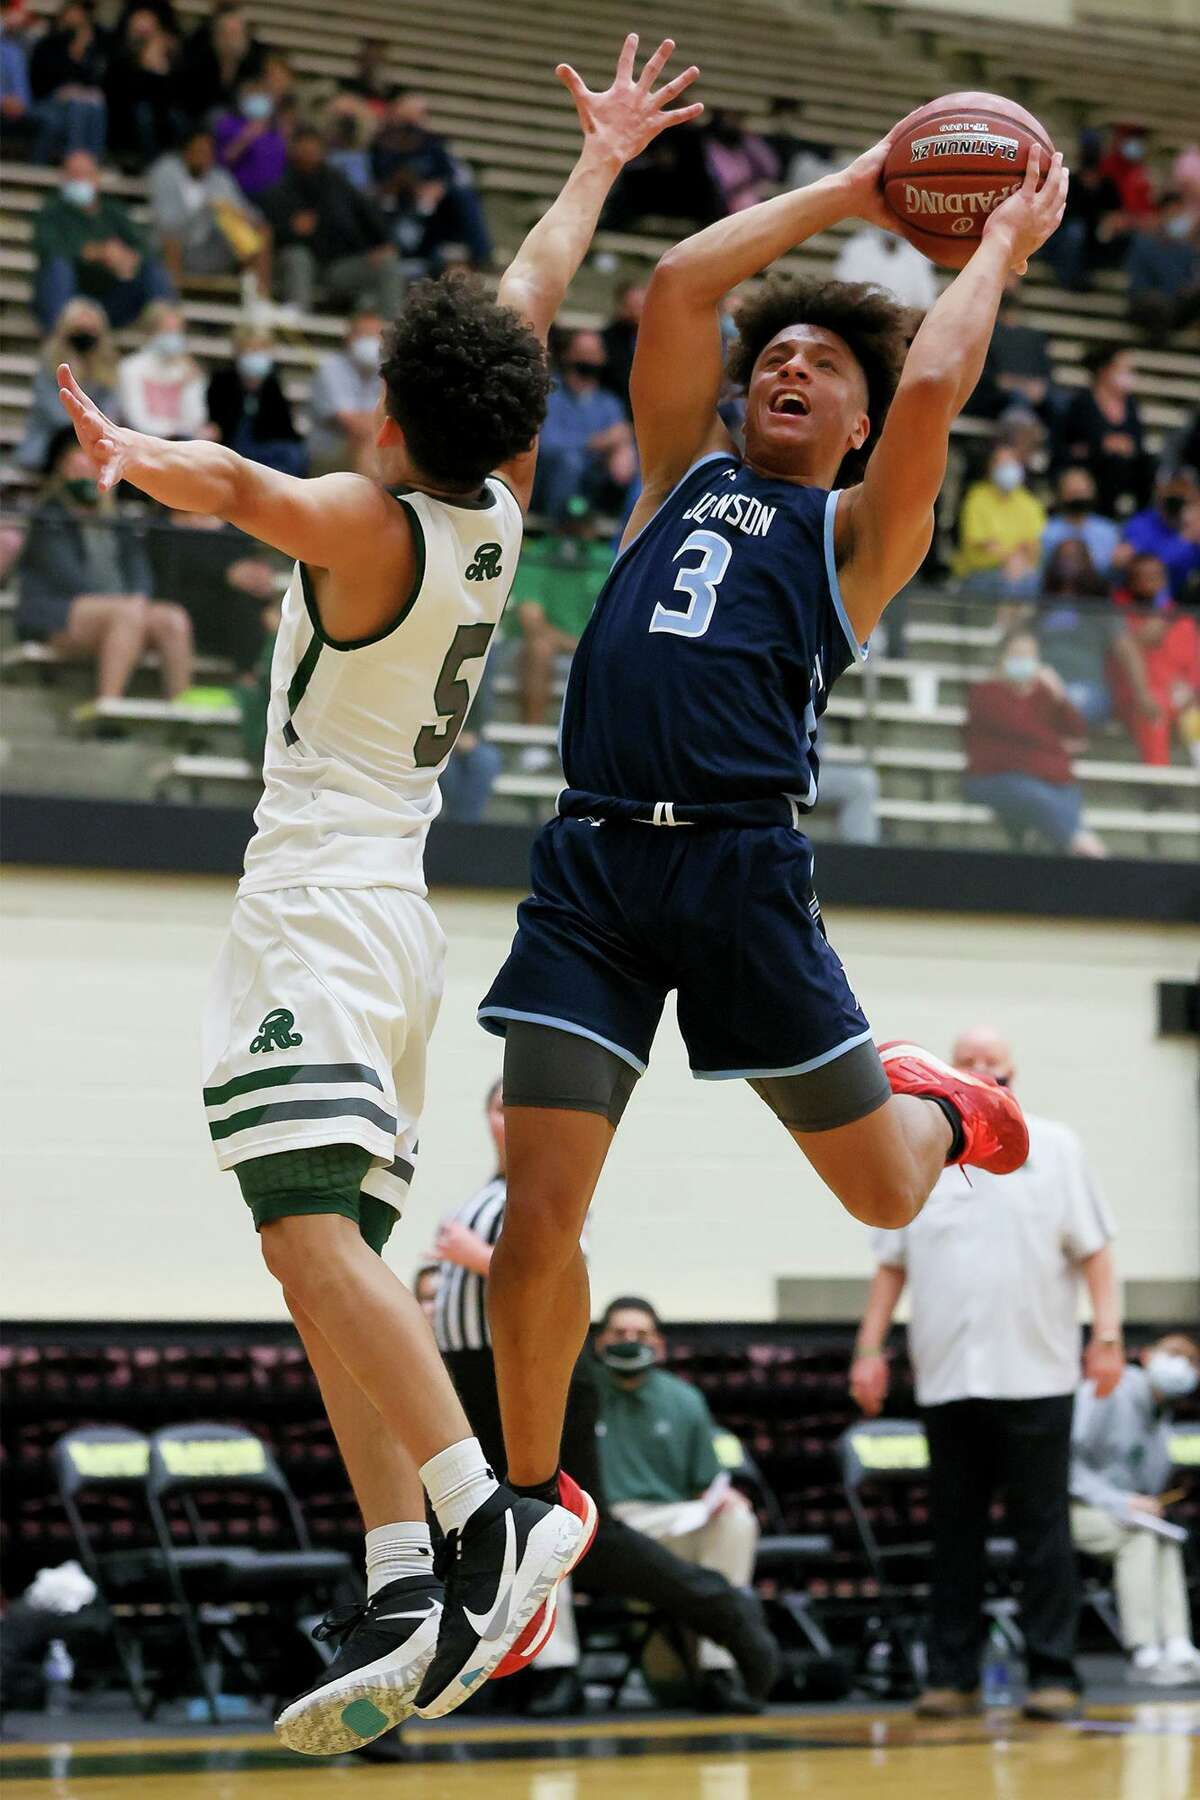 Johnson's Shane Johnson, right, shoots around Reagan's Keith Davis during their District 28-6A boys basketball game at Littleton Gym on Saturday, Jan. 23, 2021. Johnson led the Jaguars with 17 points to help them beat Reagan 66-46.